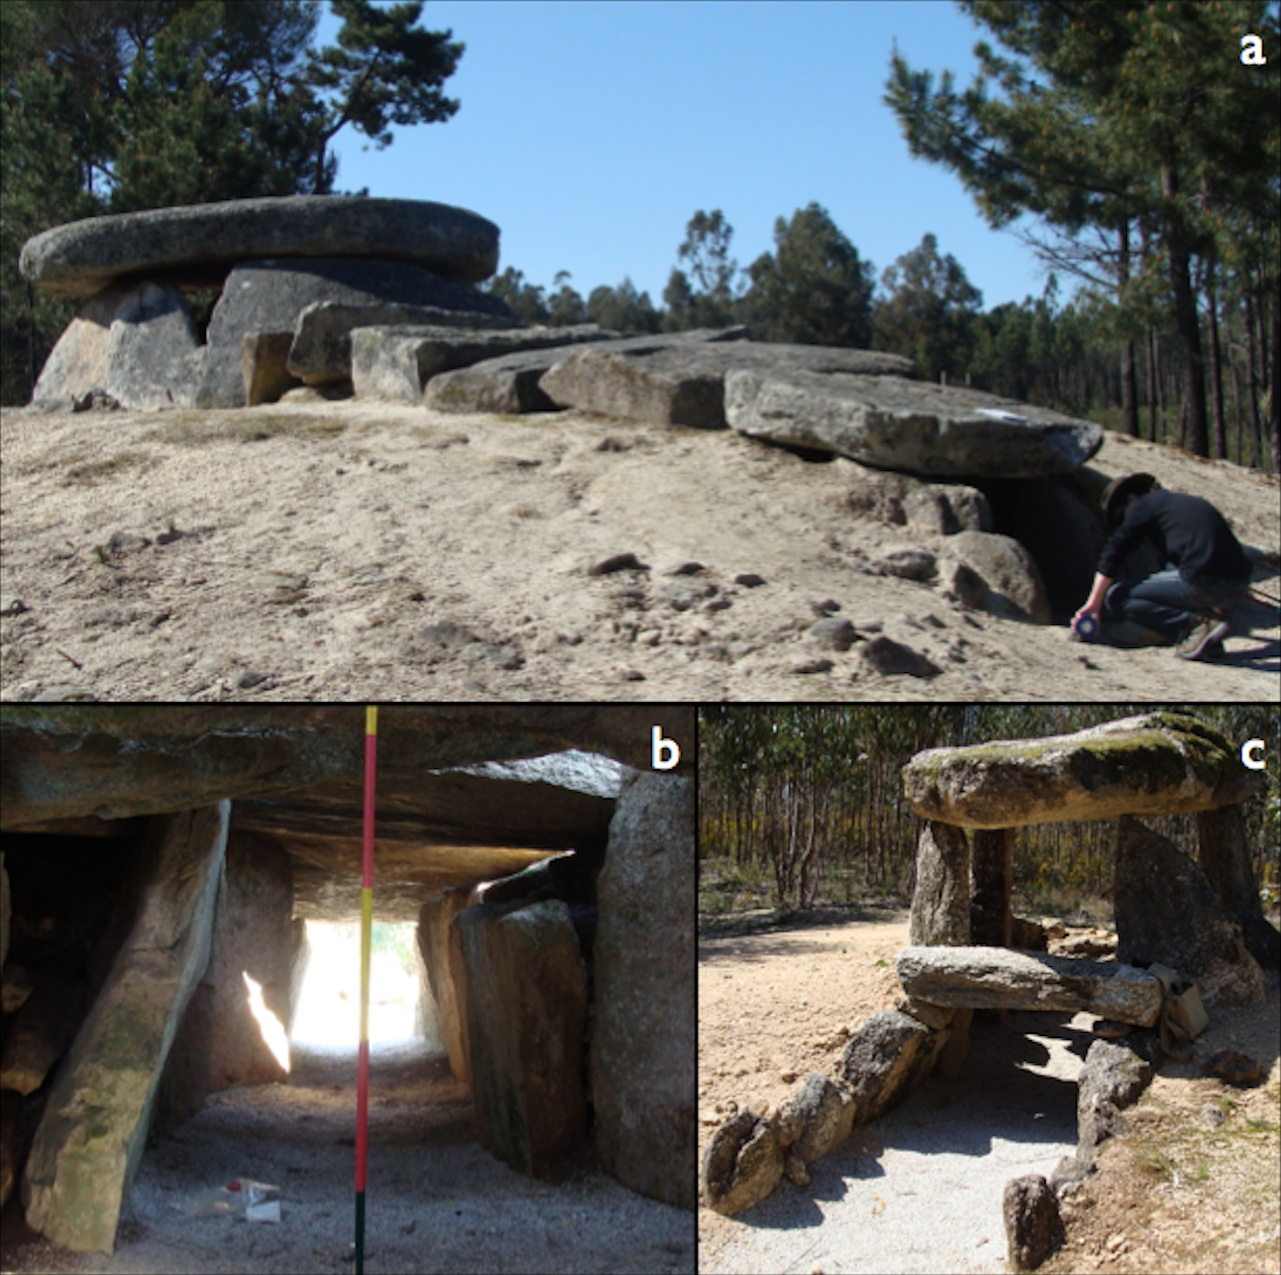 Photographs of the megalithic cluster of Carregal do Sal: a) Dolmen da Orca, a typical dolmenic structure in western Iberia; b) view of the passage and entrance while standing within the dolmen's chamber: the 'window of visibility'; c) Orca de Santo Tisco, a dolmen with a much smaller passage or corridor. Click the montage for a larger version. Image credit: F. Silva.